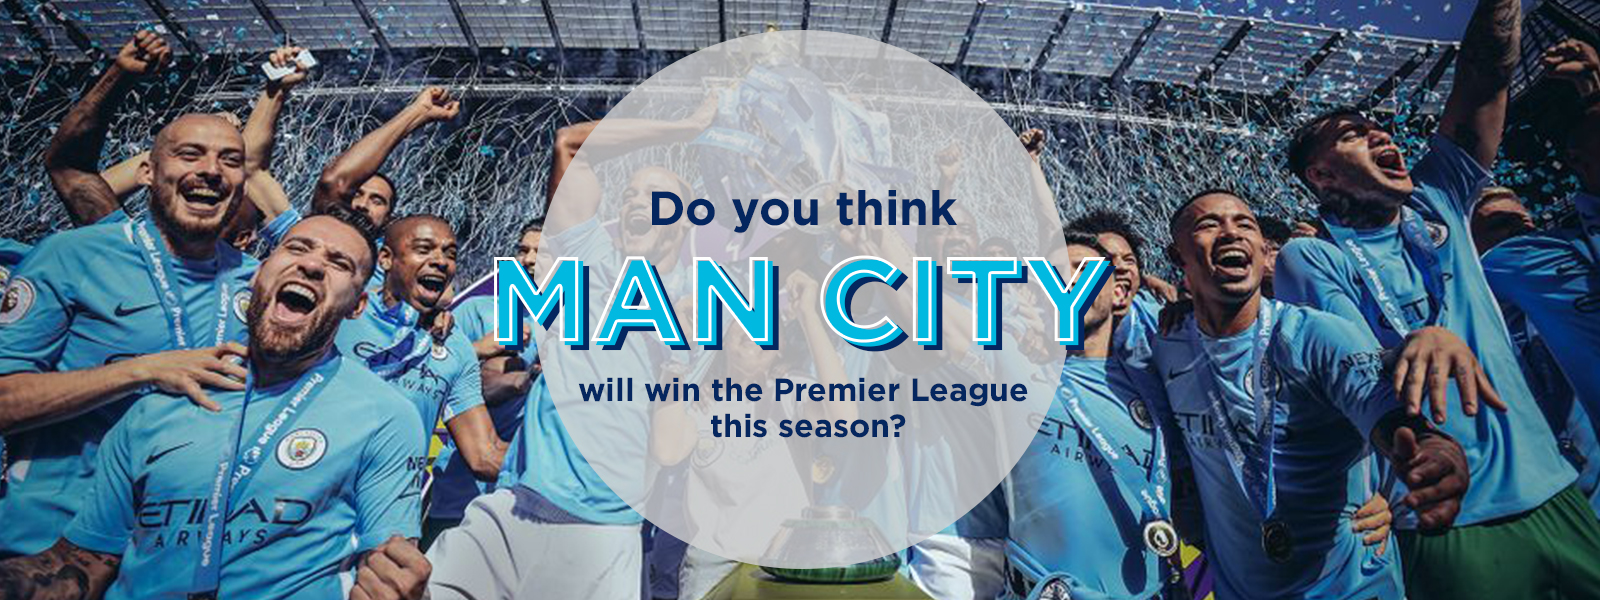 Can Man City win the Premier League 2019/2020 season?